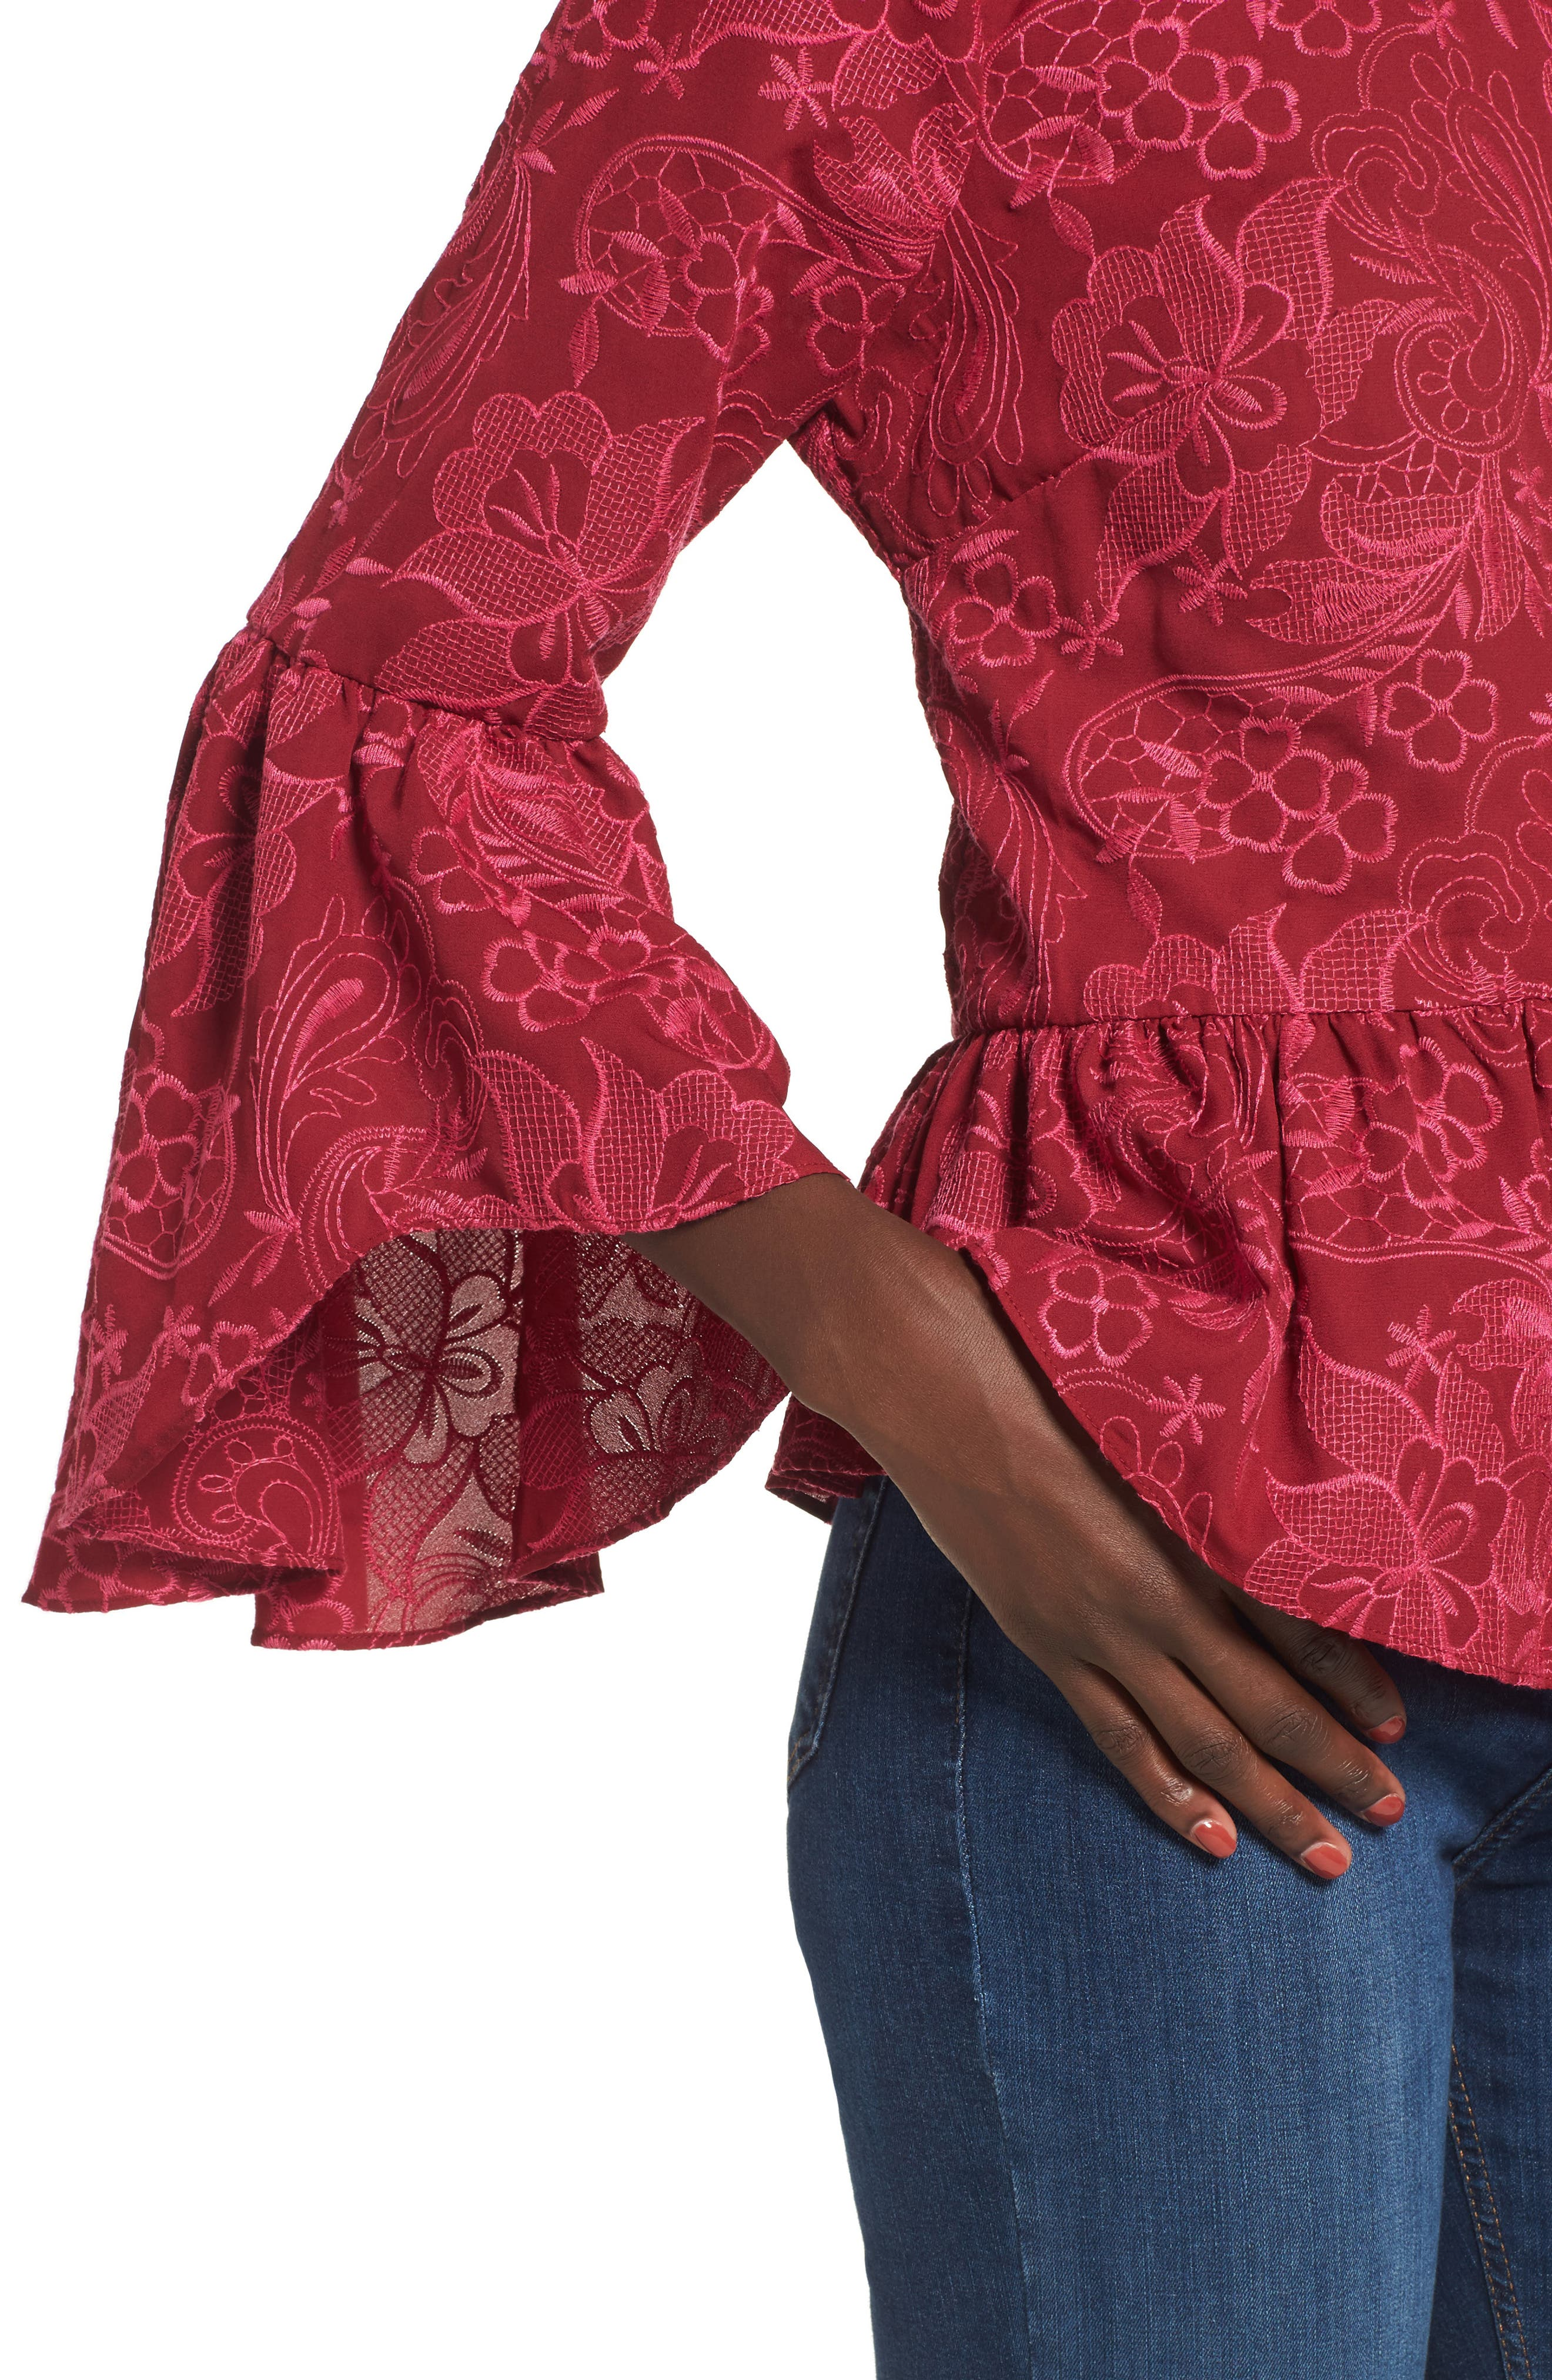 Helena Lace Bell Sleeve Top,                             Alternate thumbnail 4, color,                             400